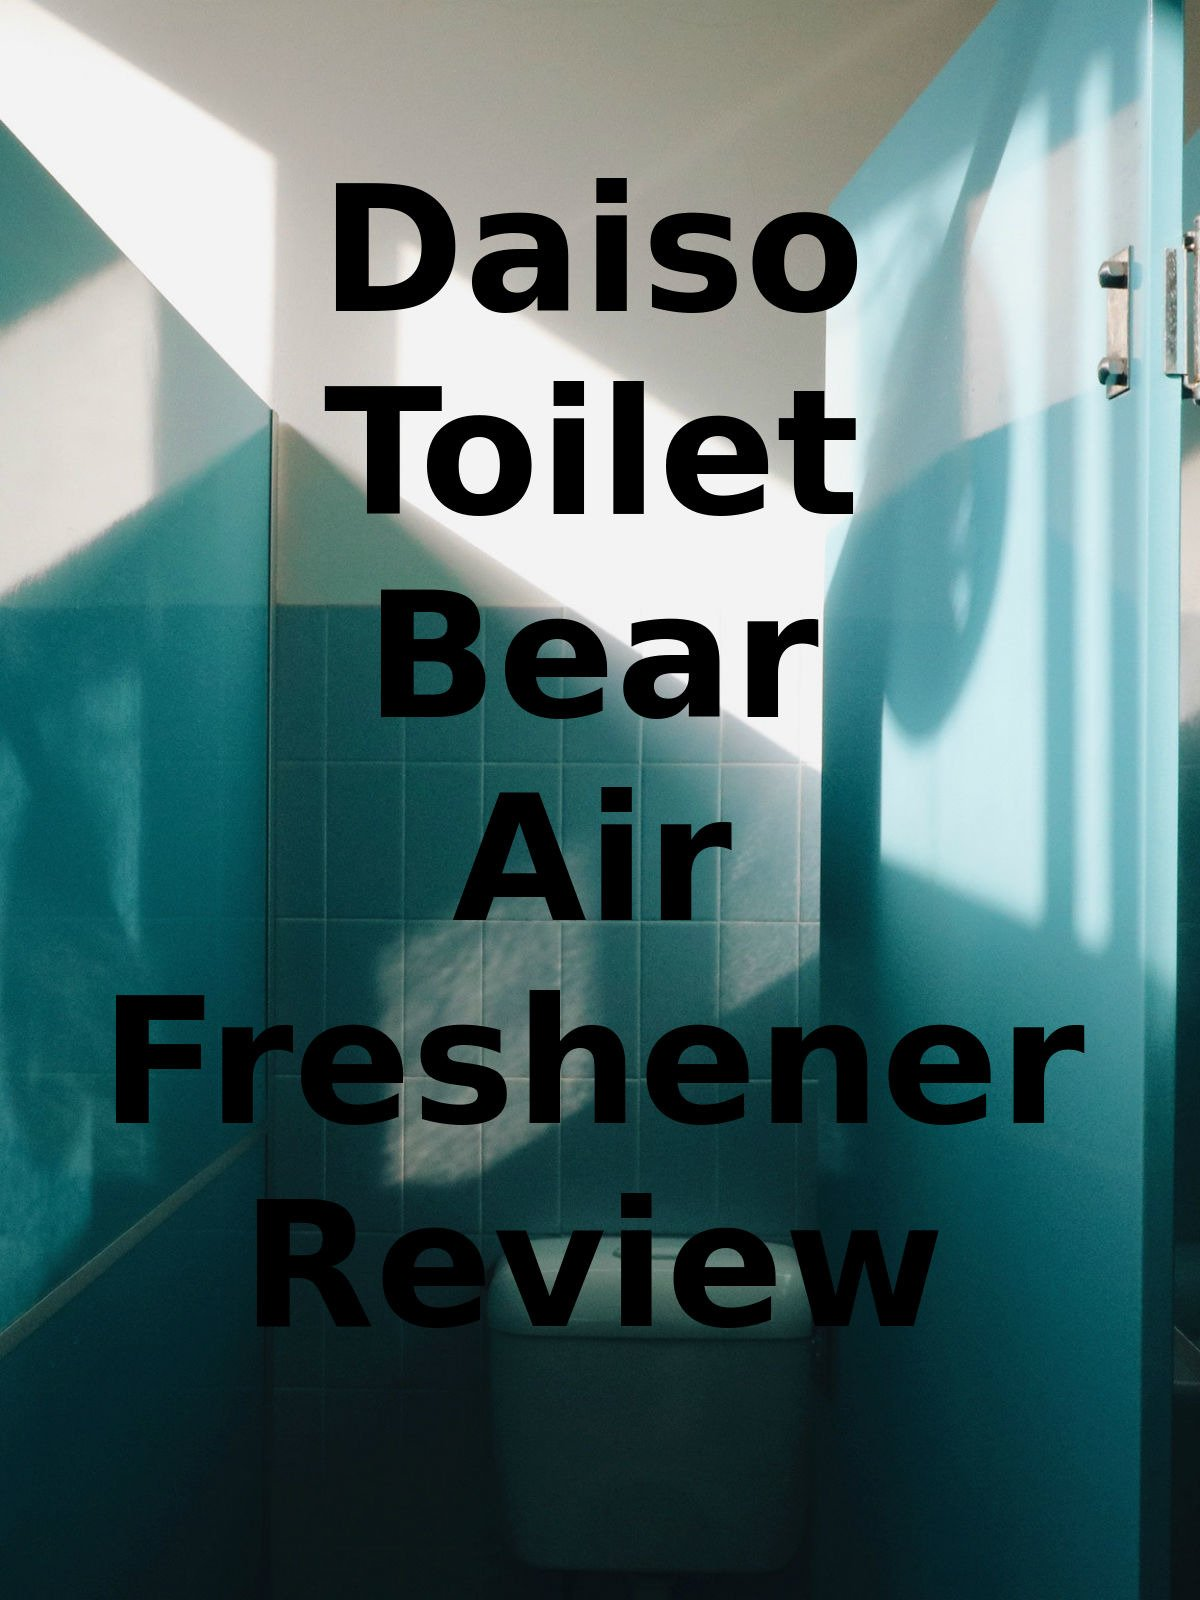 Review: Daiso Toilet Bear Air Freshener Review on Amazon Prime Instant Video UK